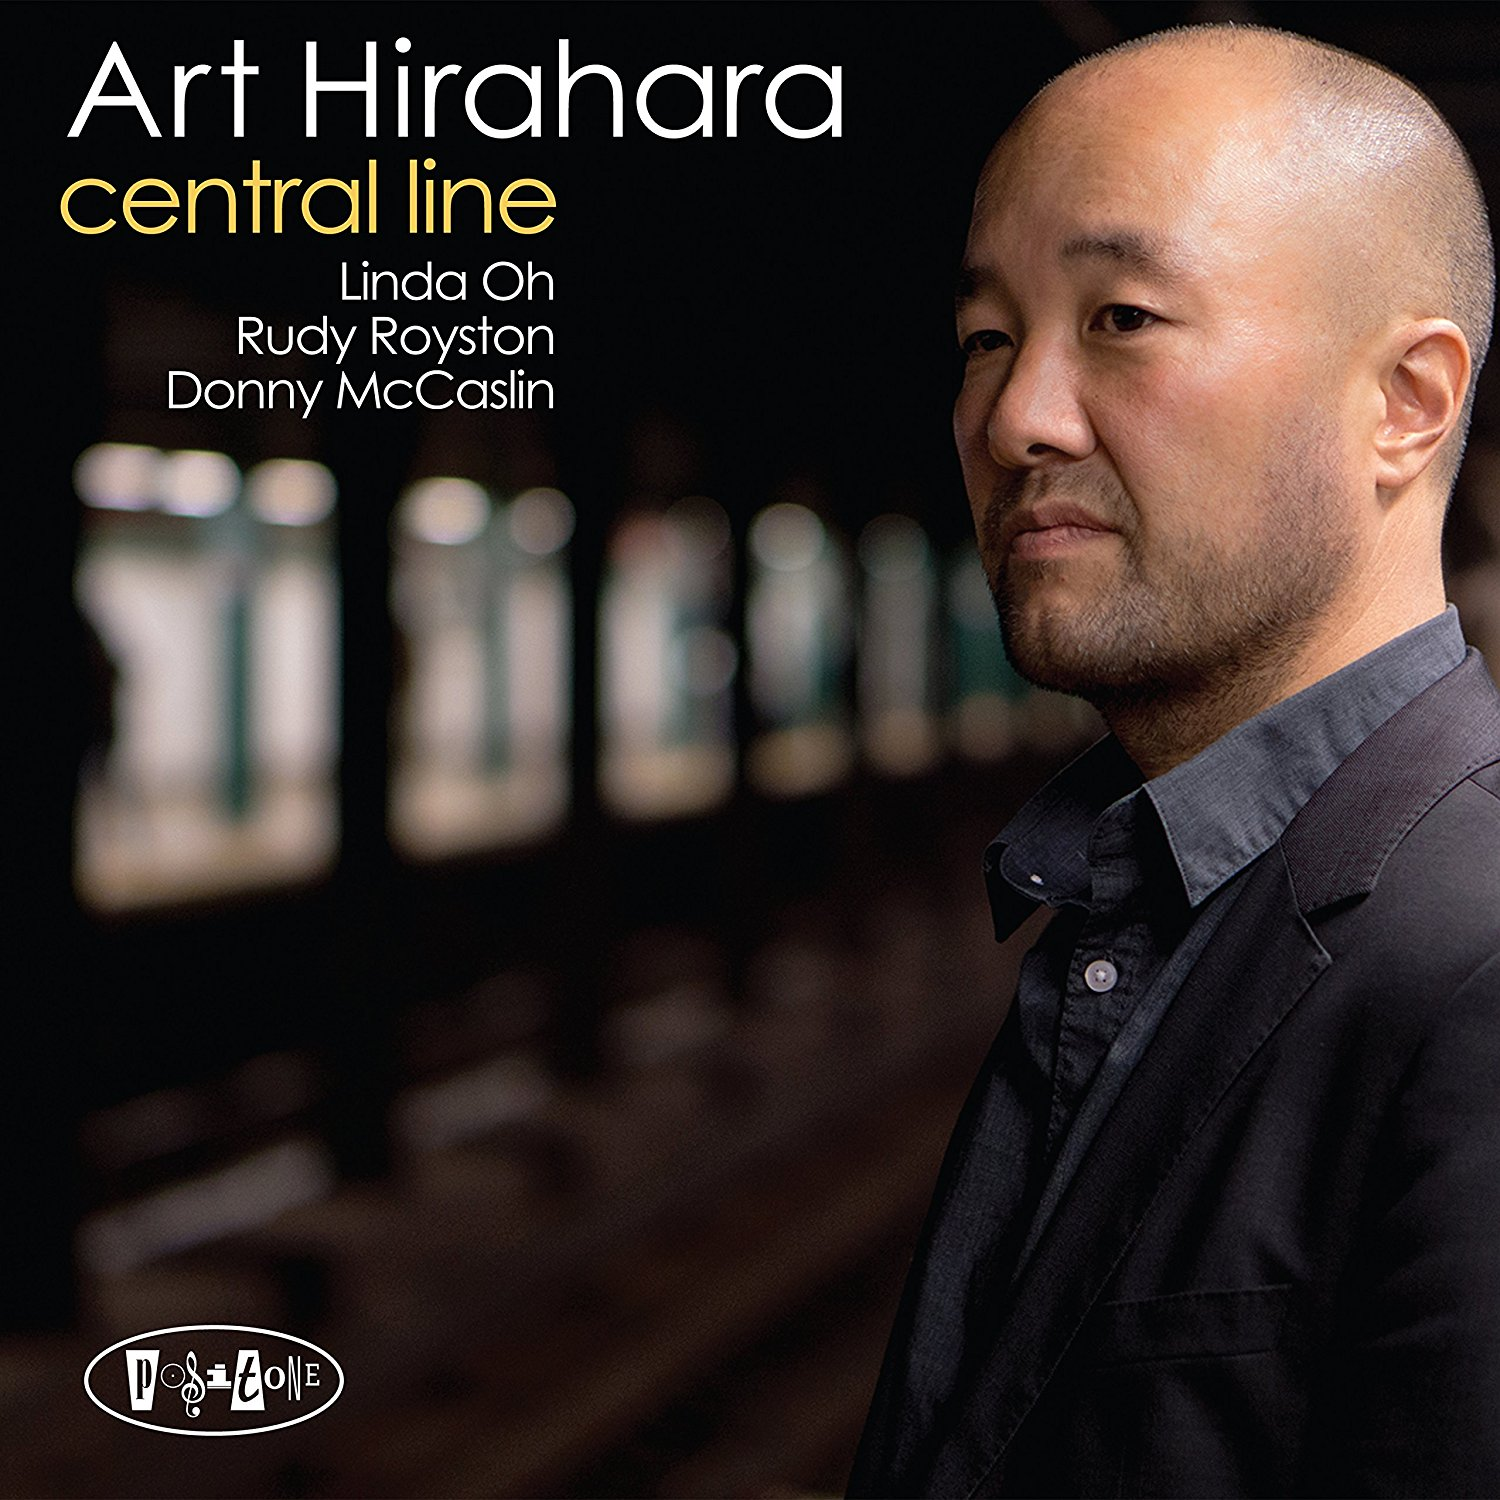 2fad7f2db9b7b Republic of Jazz  Art Hirahara - Central Line (POSI-TONE RECORDS 2017)